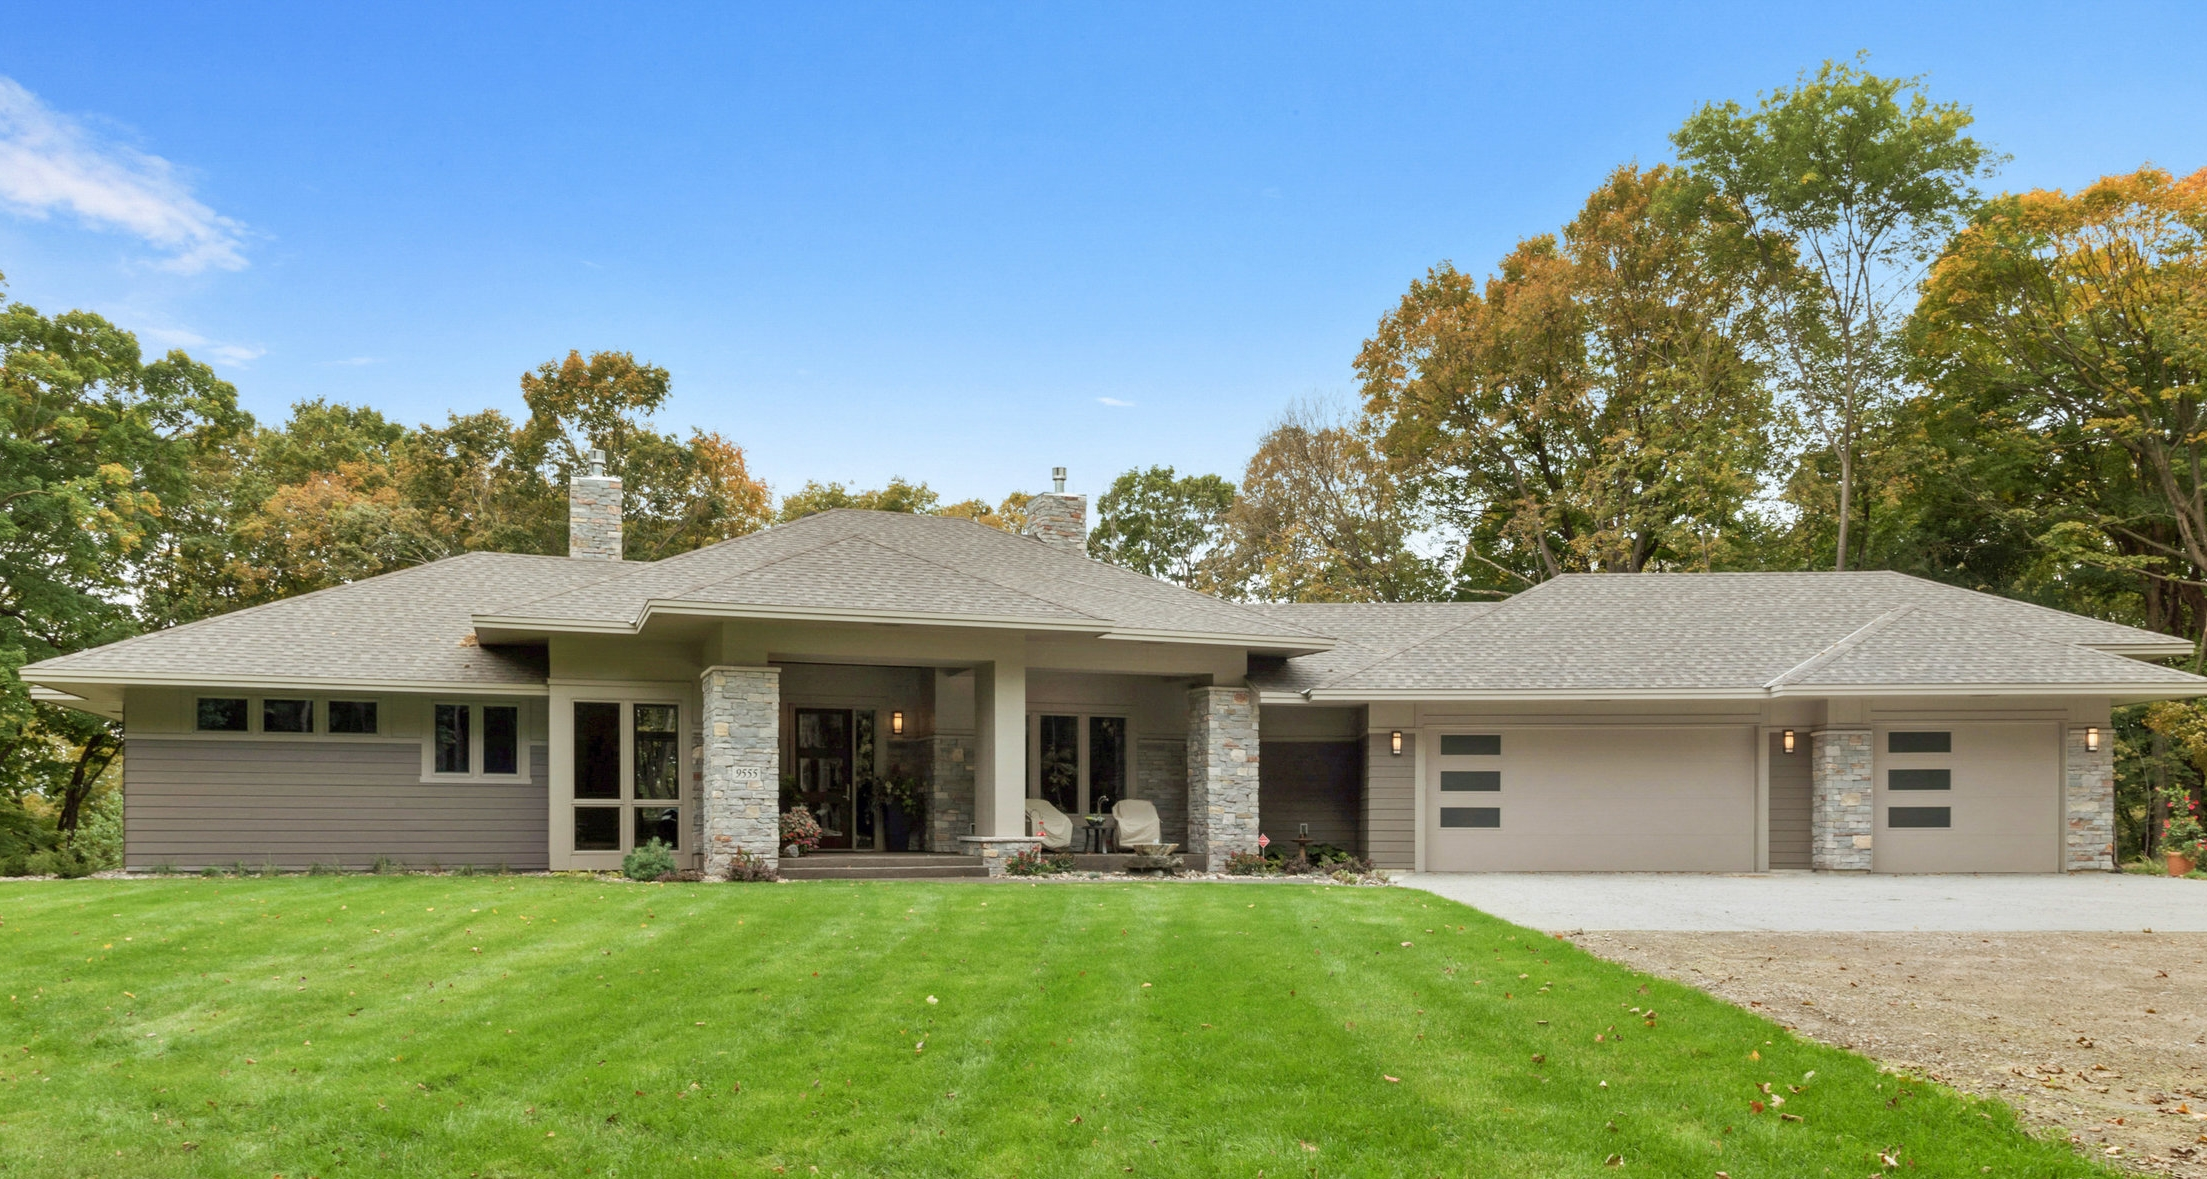 9555 Scott Street • Greenfield   Click on image for a complete gallery for this home.